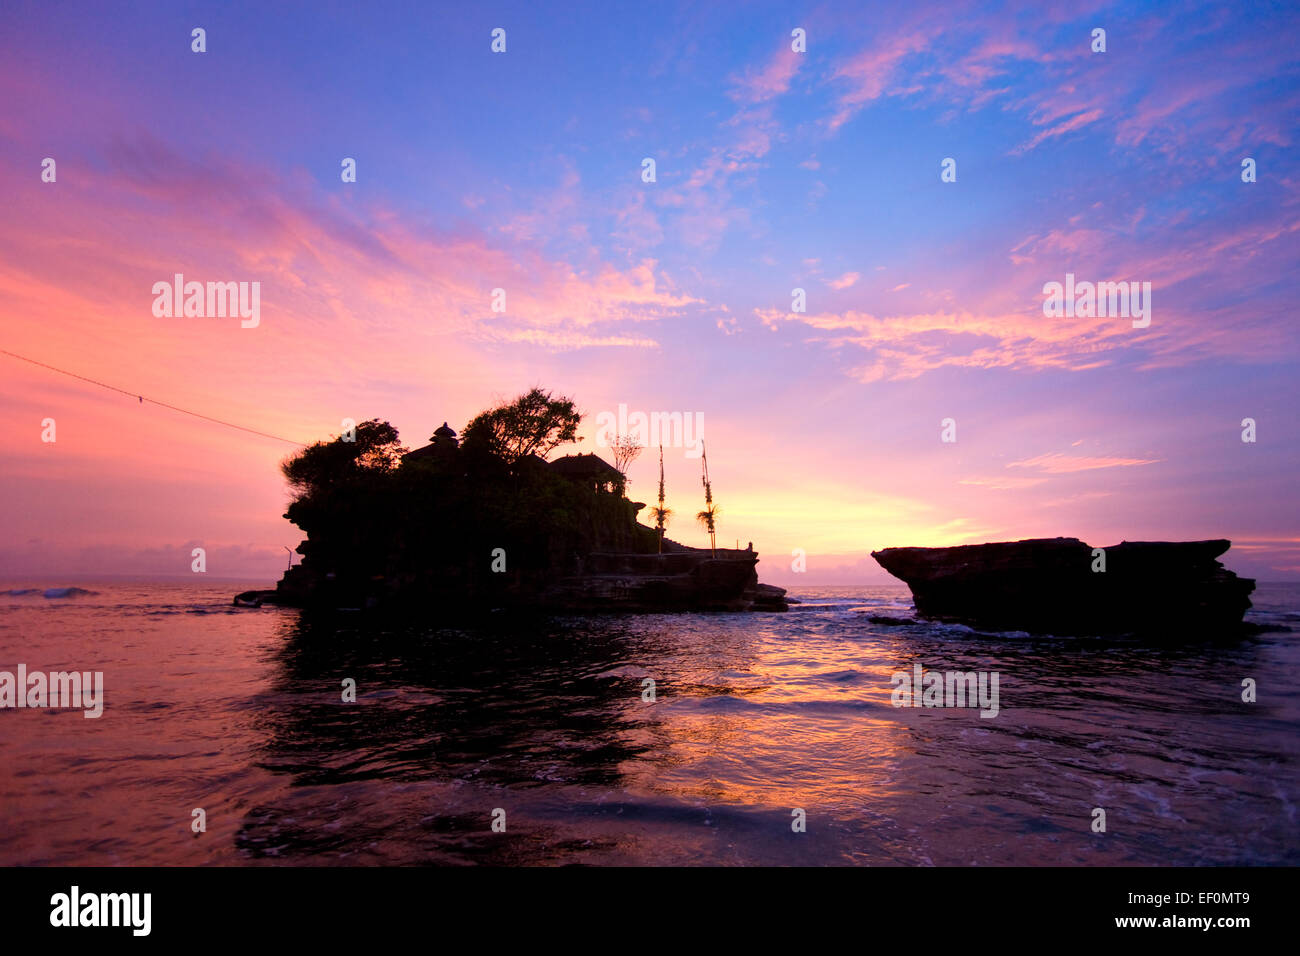 Le temple de Tanah Lot au coucher du soleil, le plus important temple indu de Bali, Indonésie. Photo Stock